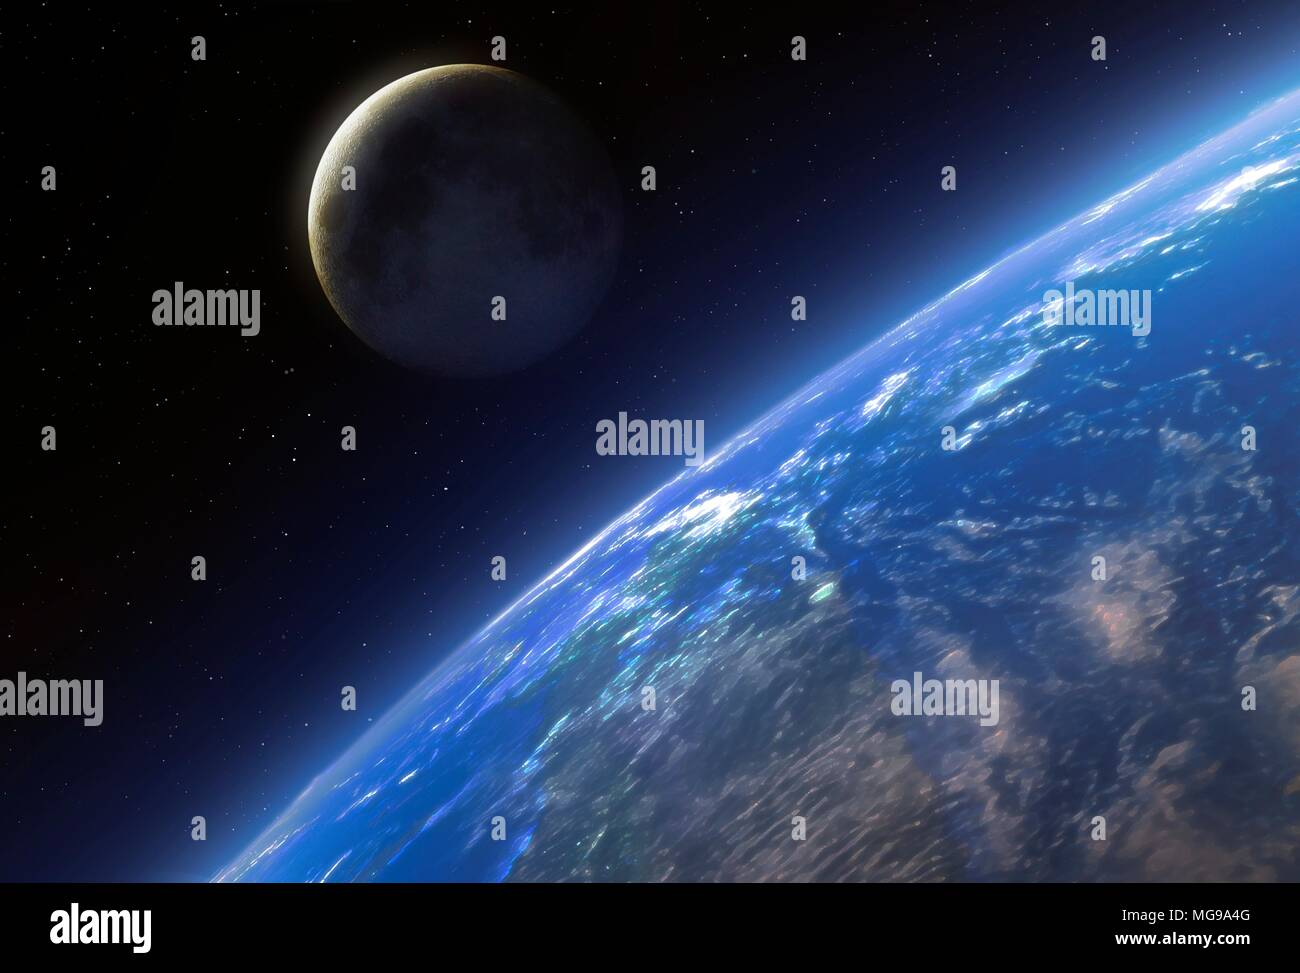 The Earth and Moon seen from space, illustration. - Stock Image